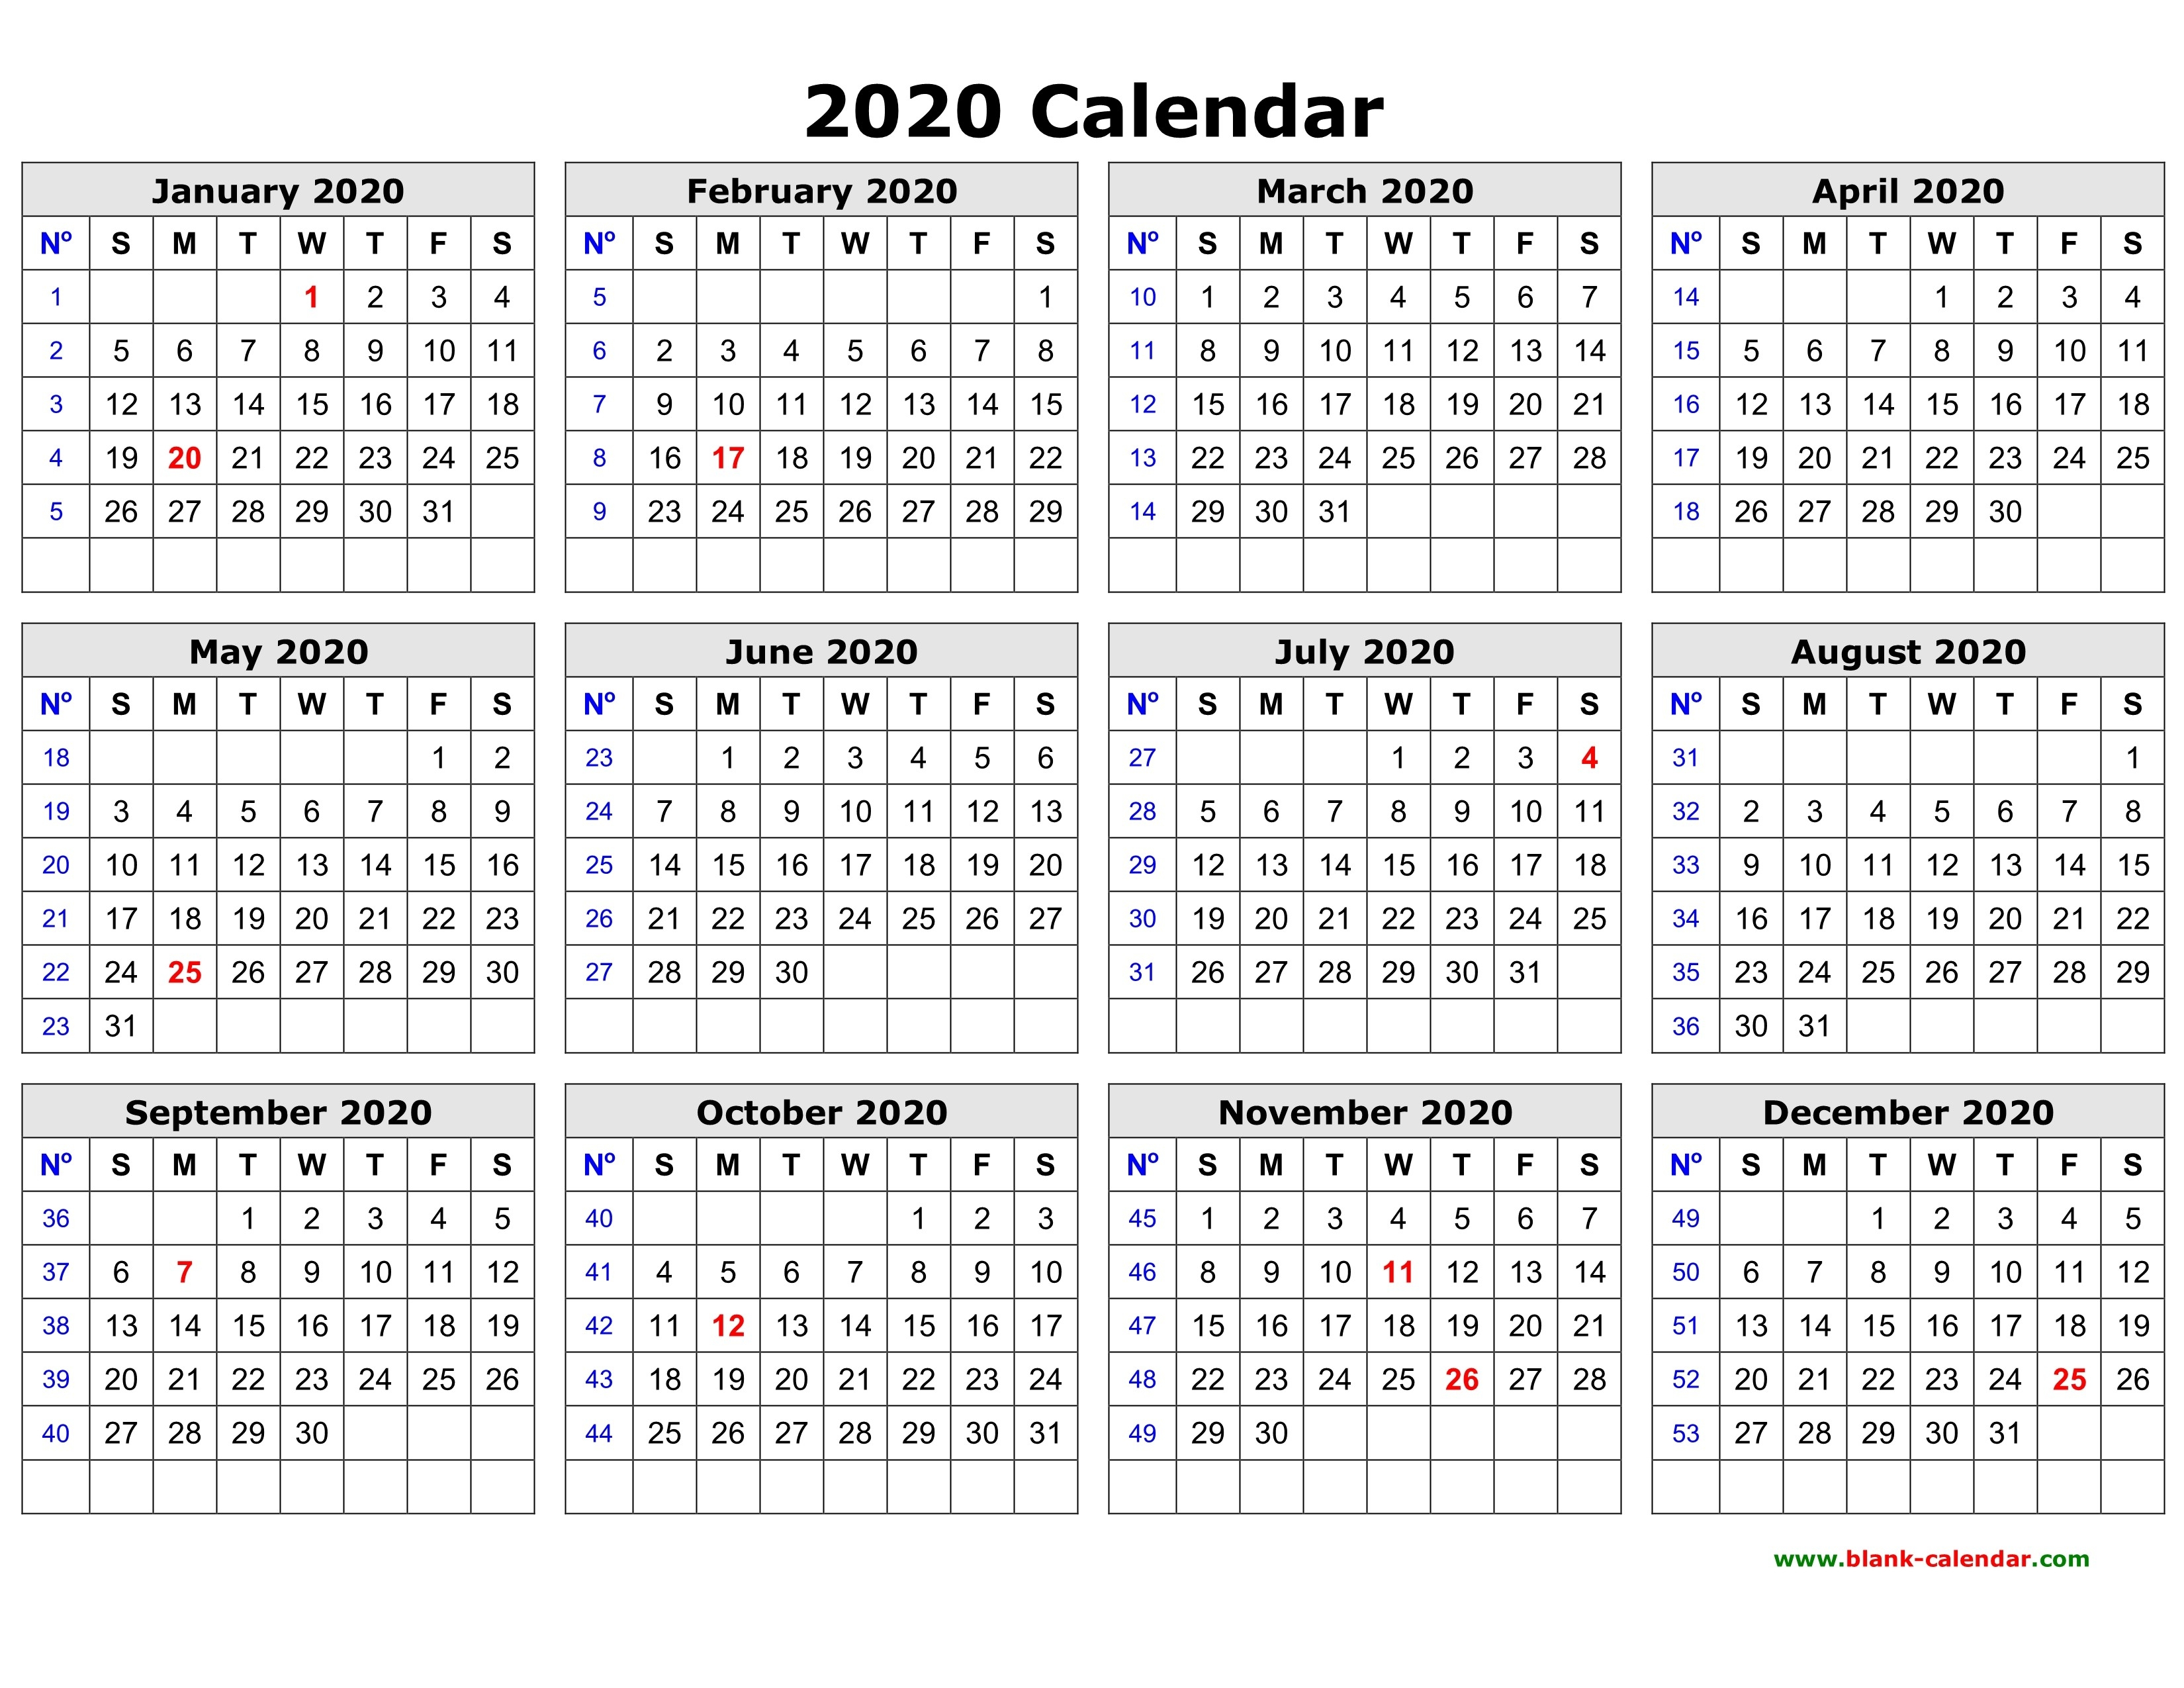 Free Download Printable Calendar 2020 In One Page, Clean Design.-Blank Printable Calandes With 2 Months On A Page Year 2020